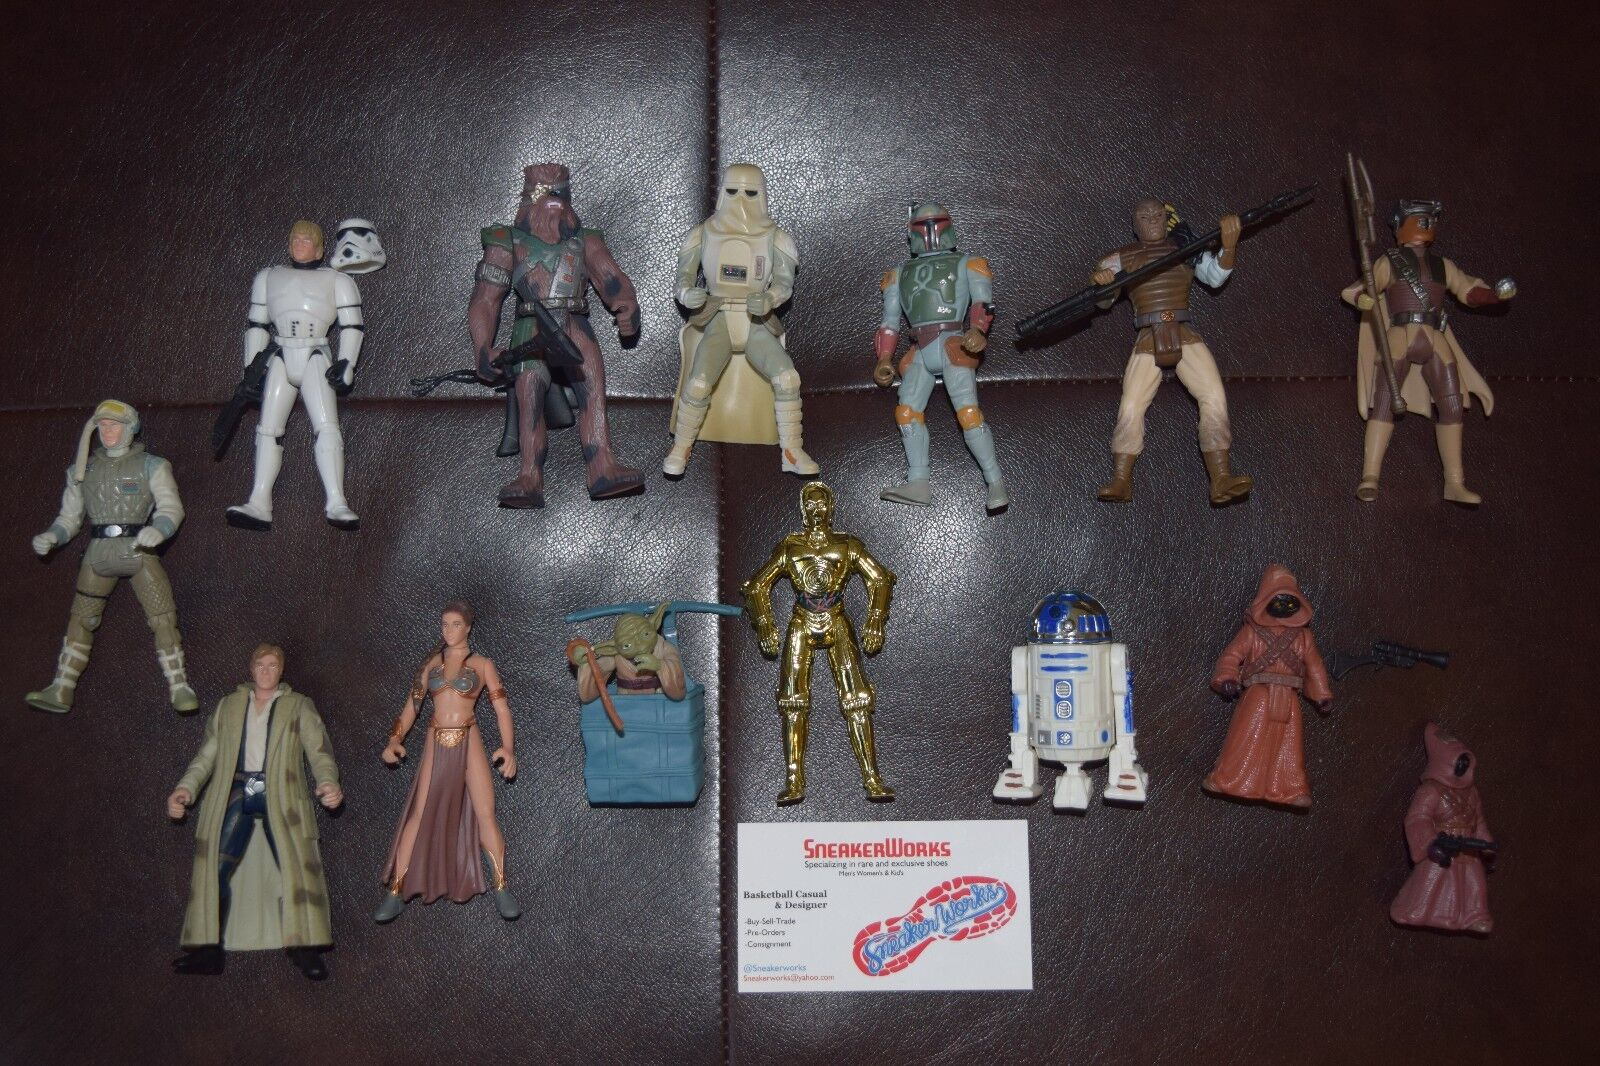 Star Wars Kenner 14 Action Figure Lot Yoda Luke Han Solo R2-D2 C-3PO and More